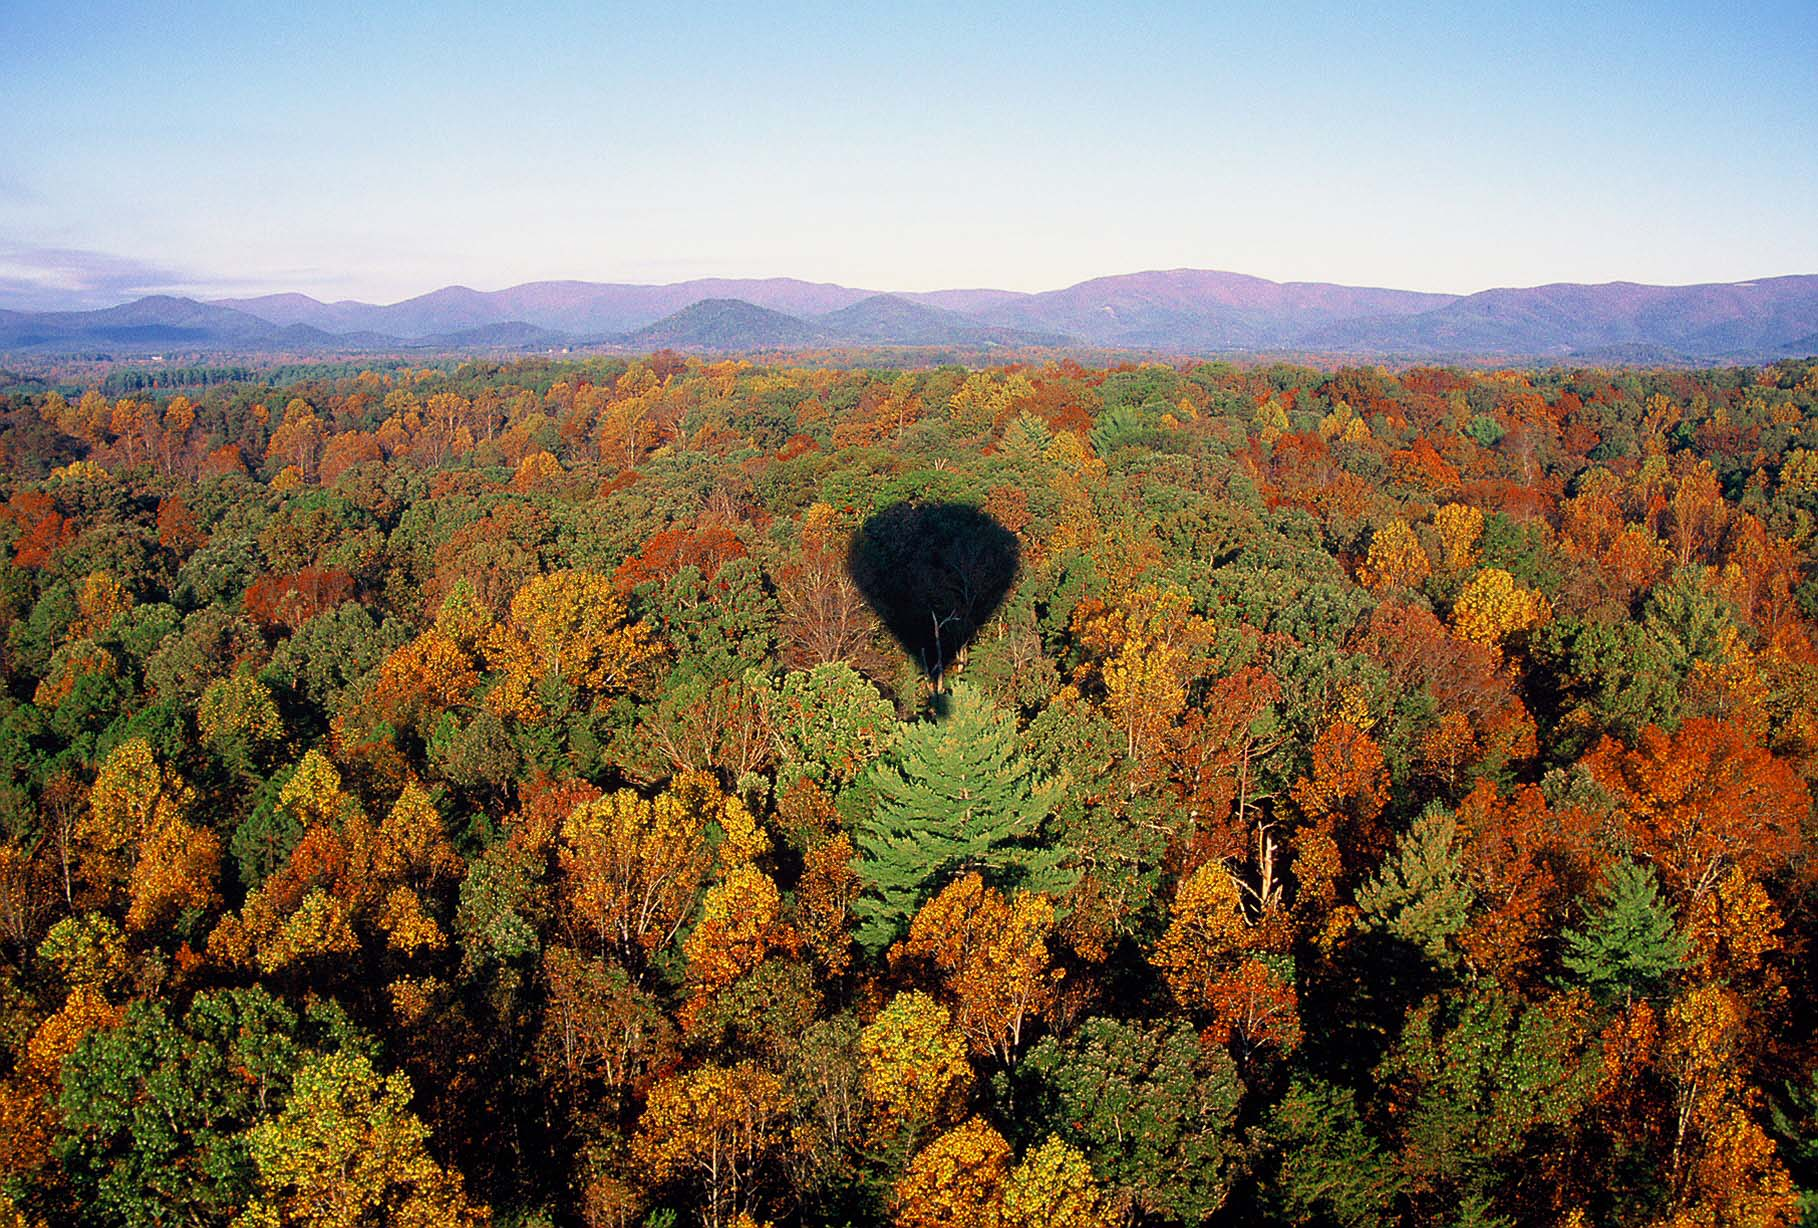 The shadow of a hot air balloon falls on a forest's autumn colors. (photo credit: Katherine Rodeghier, c 2012)